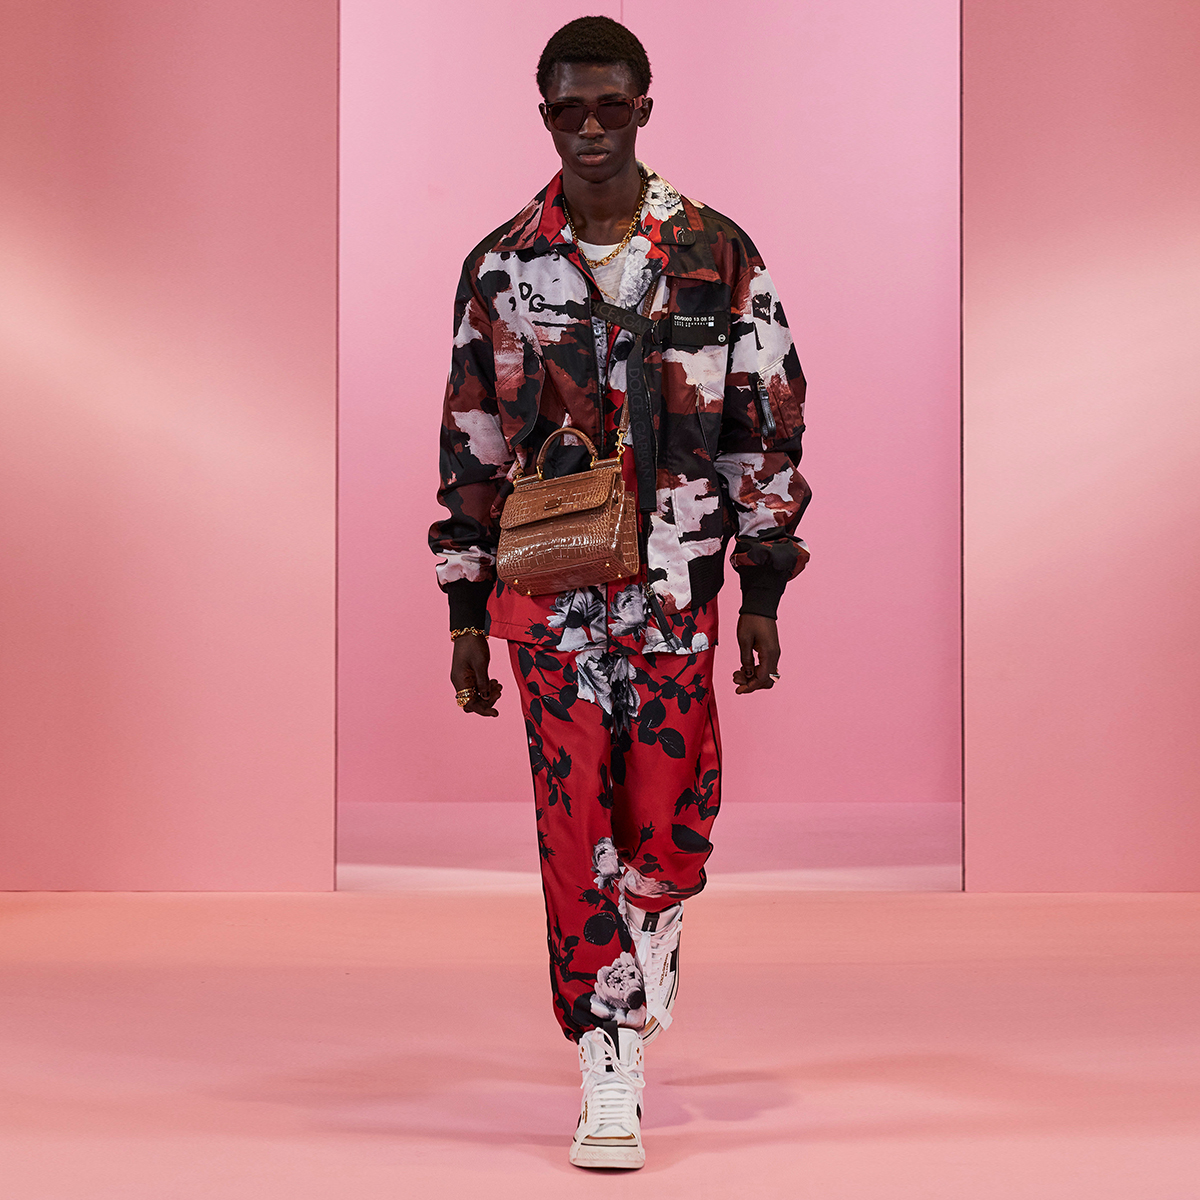 The #DGDigitalShowMan1 look is made up of a camouflage jacket over a floral-printed red pyjama set, white high-top sneakers, a brown #DGSicilyBag and #DGEyewear.  Shop the DNA look at the link:  #DolceGabbana